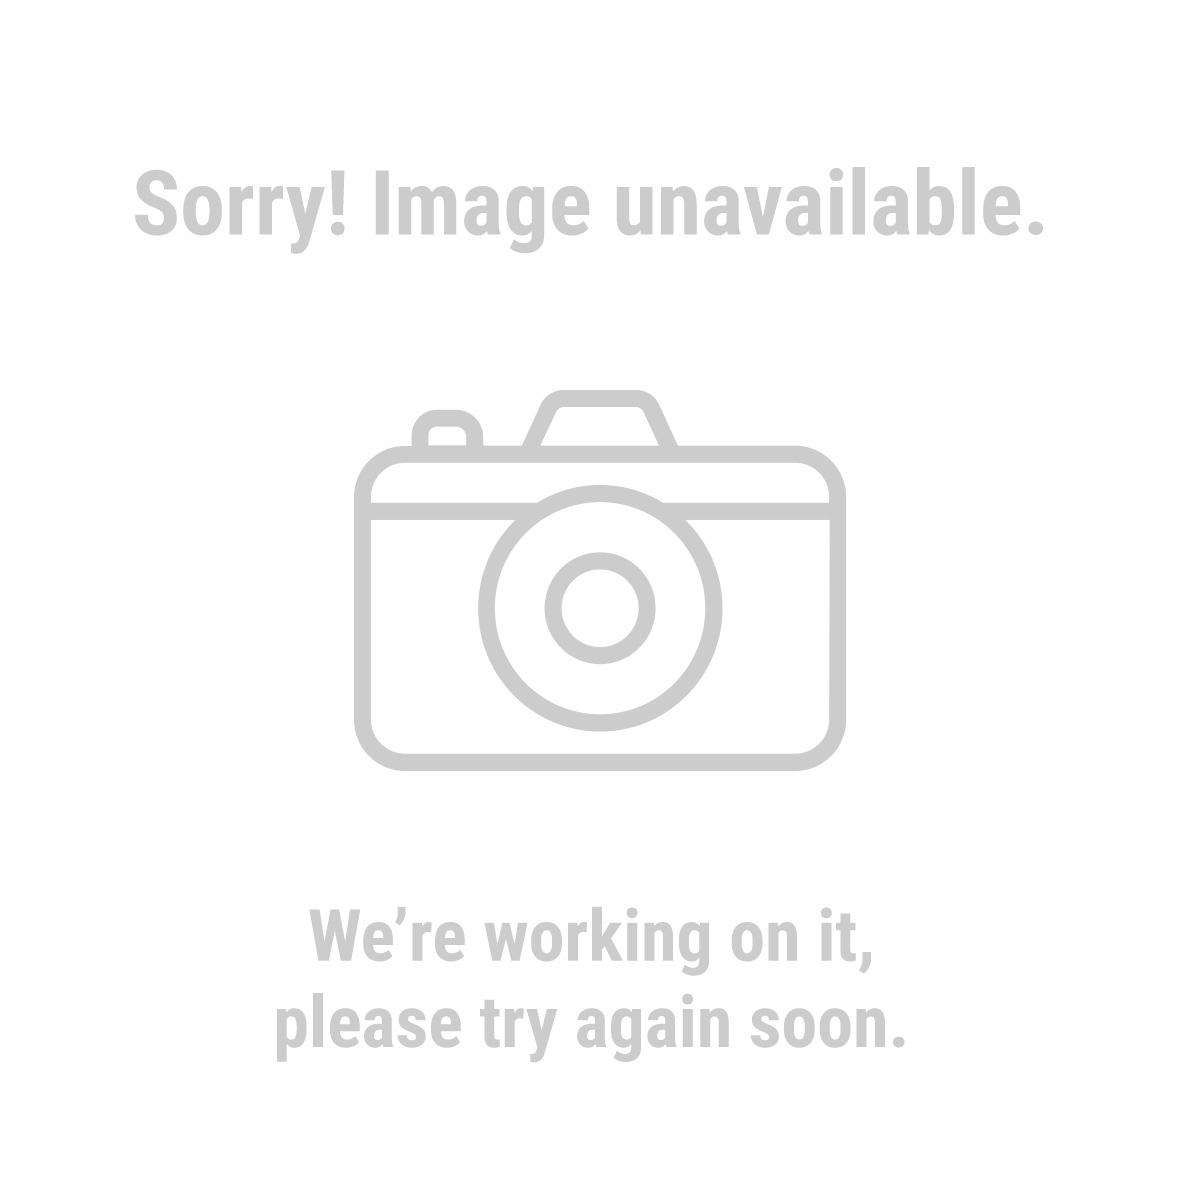 13 Piece Precision Knife Set